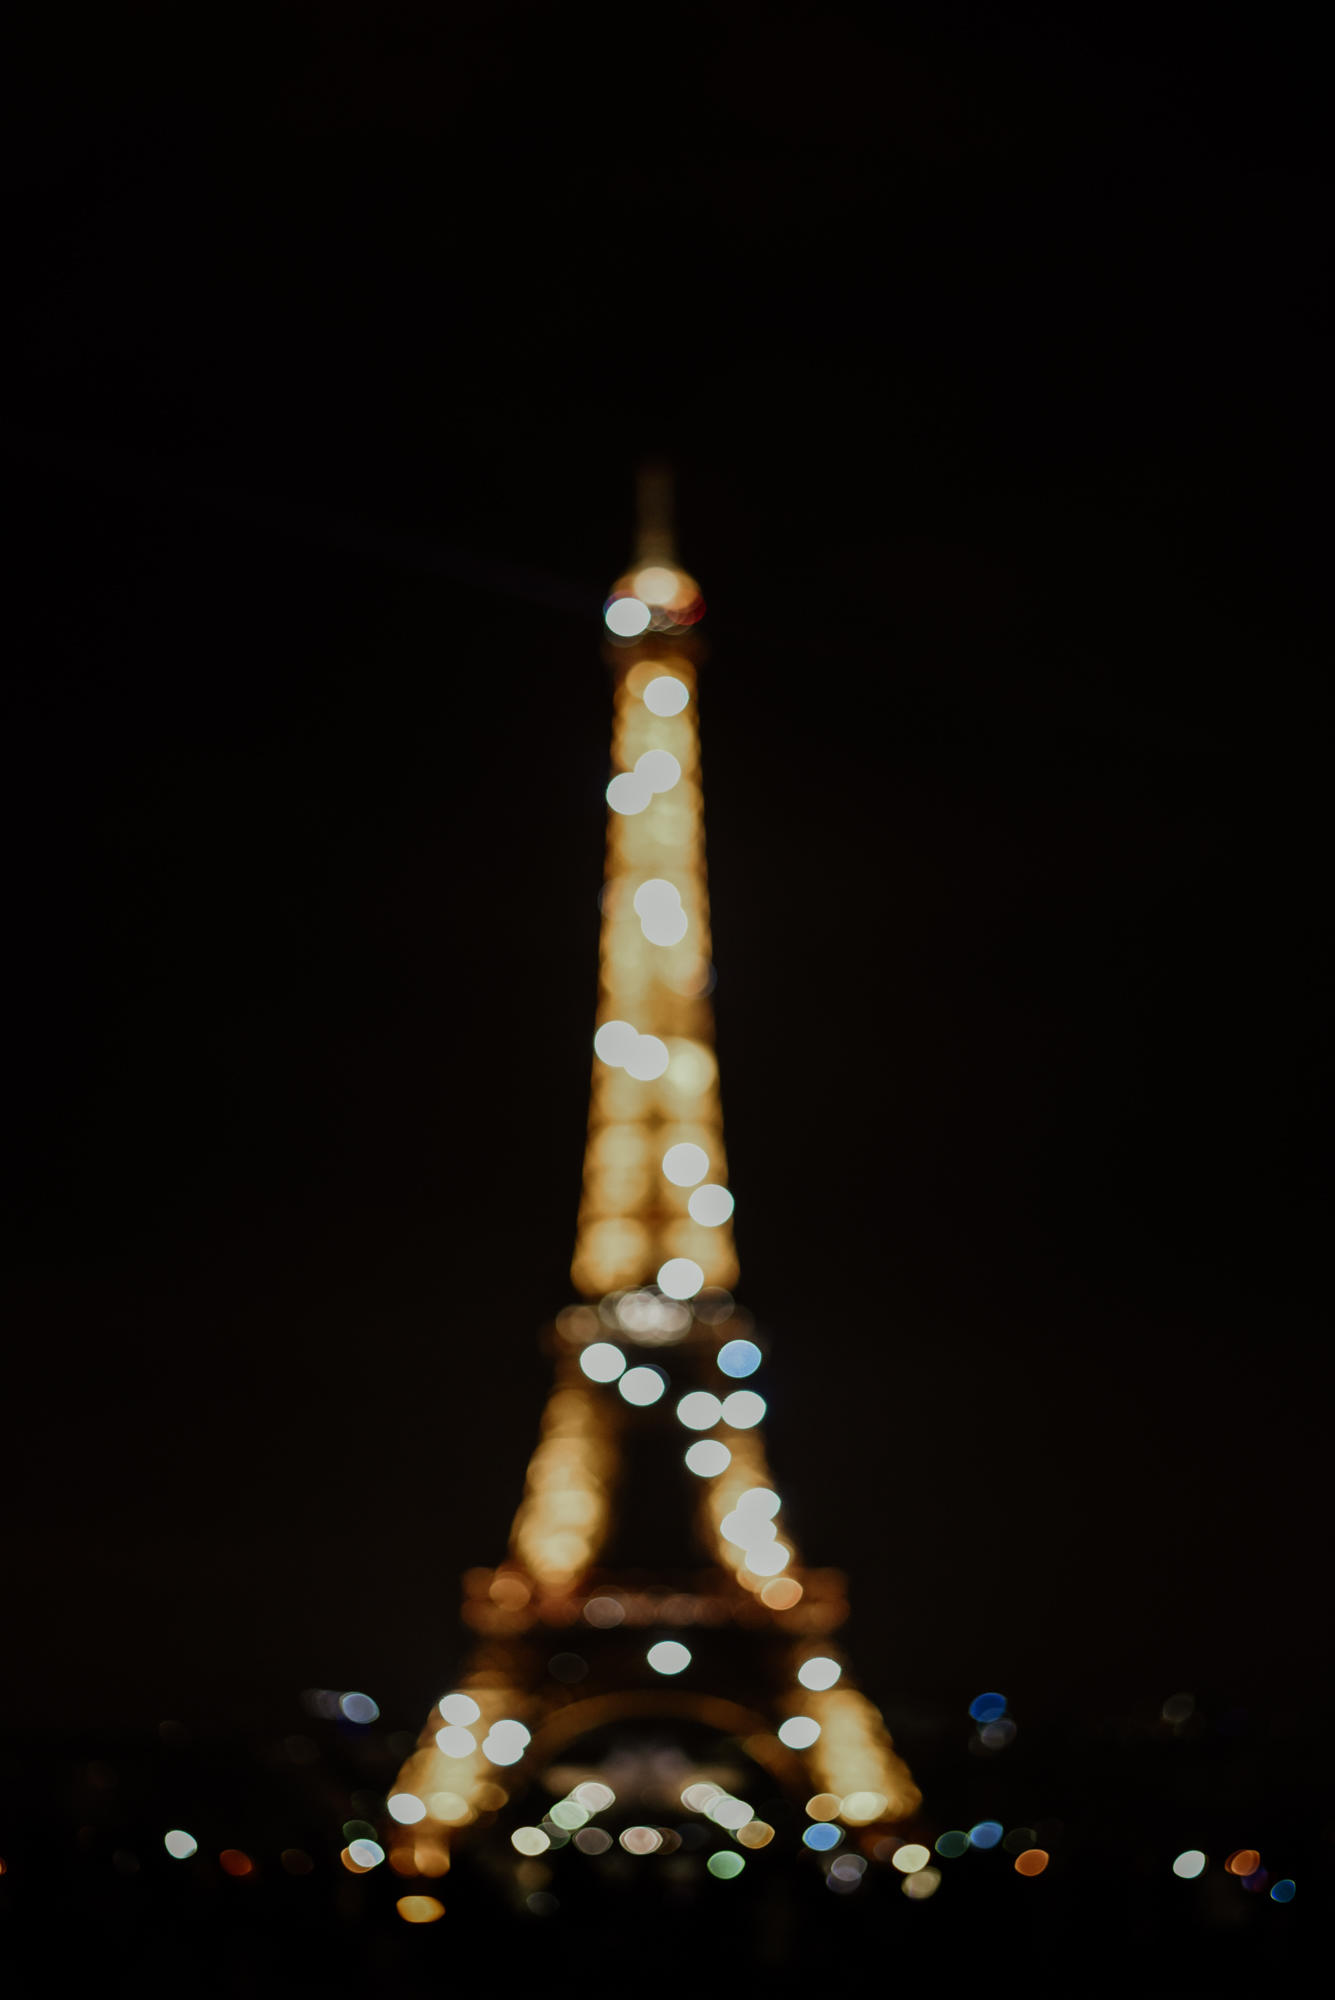 sparkling eiffel tower by night with bokeh effect